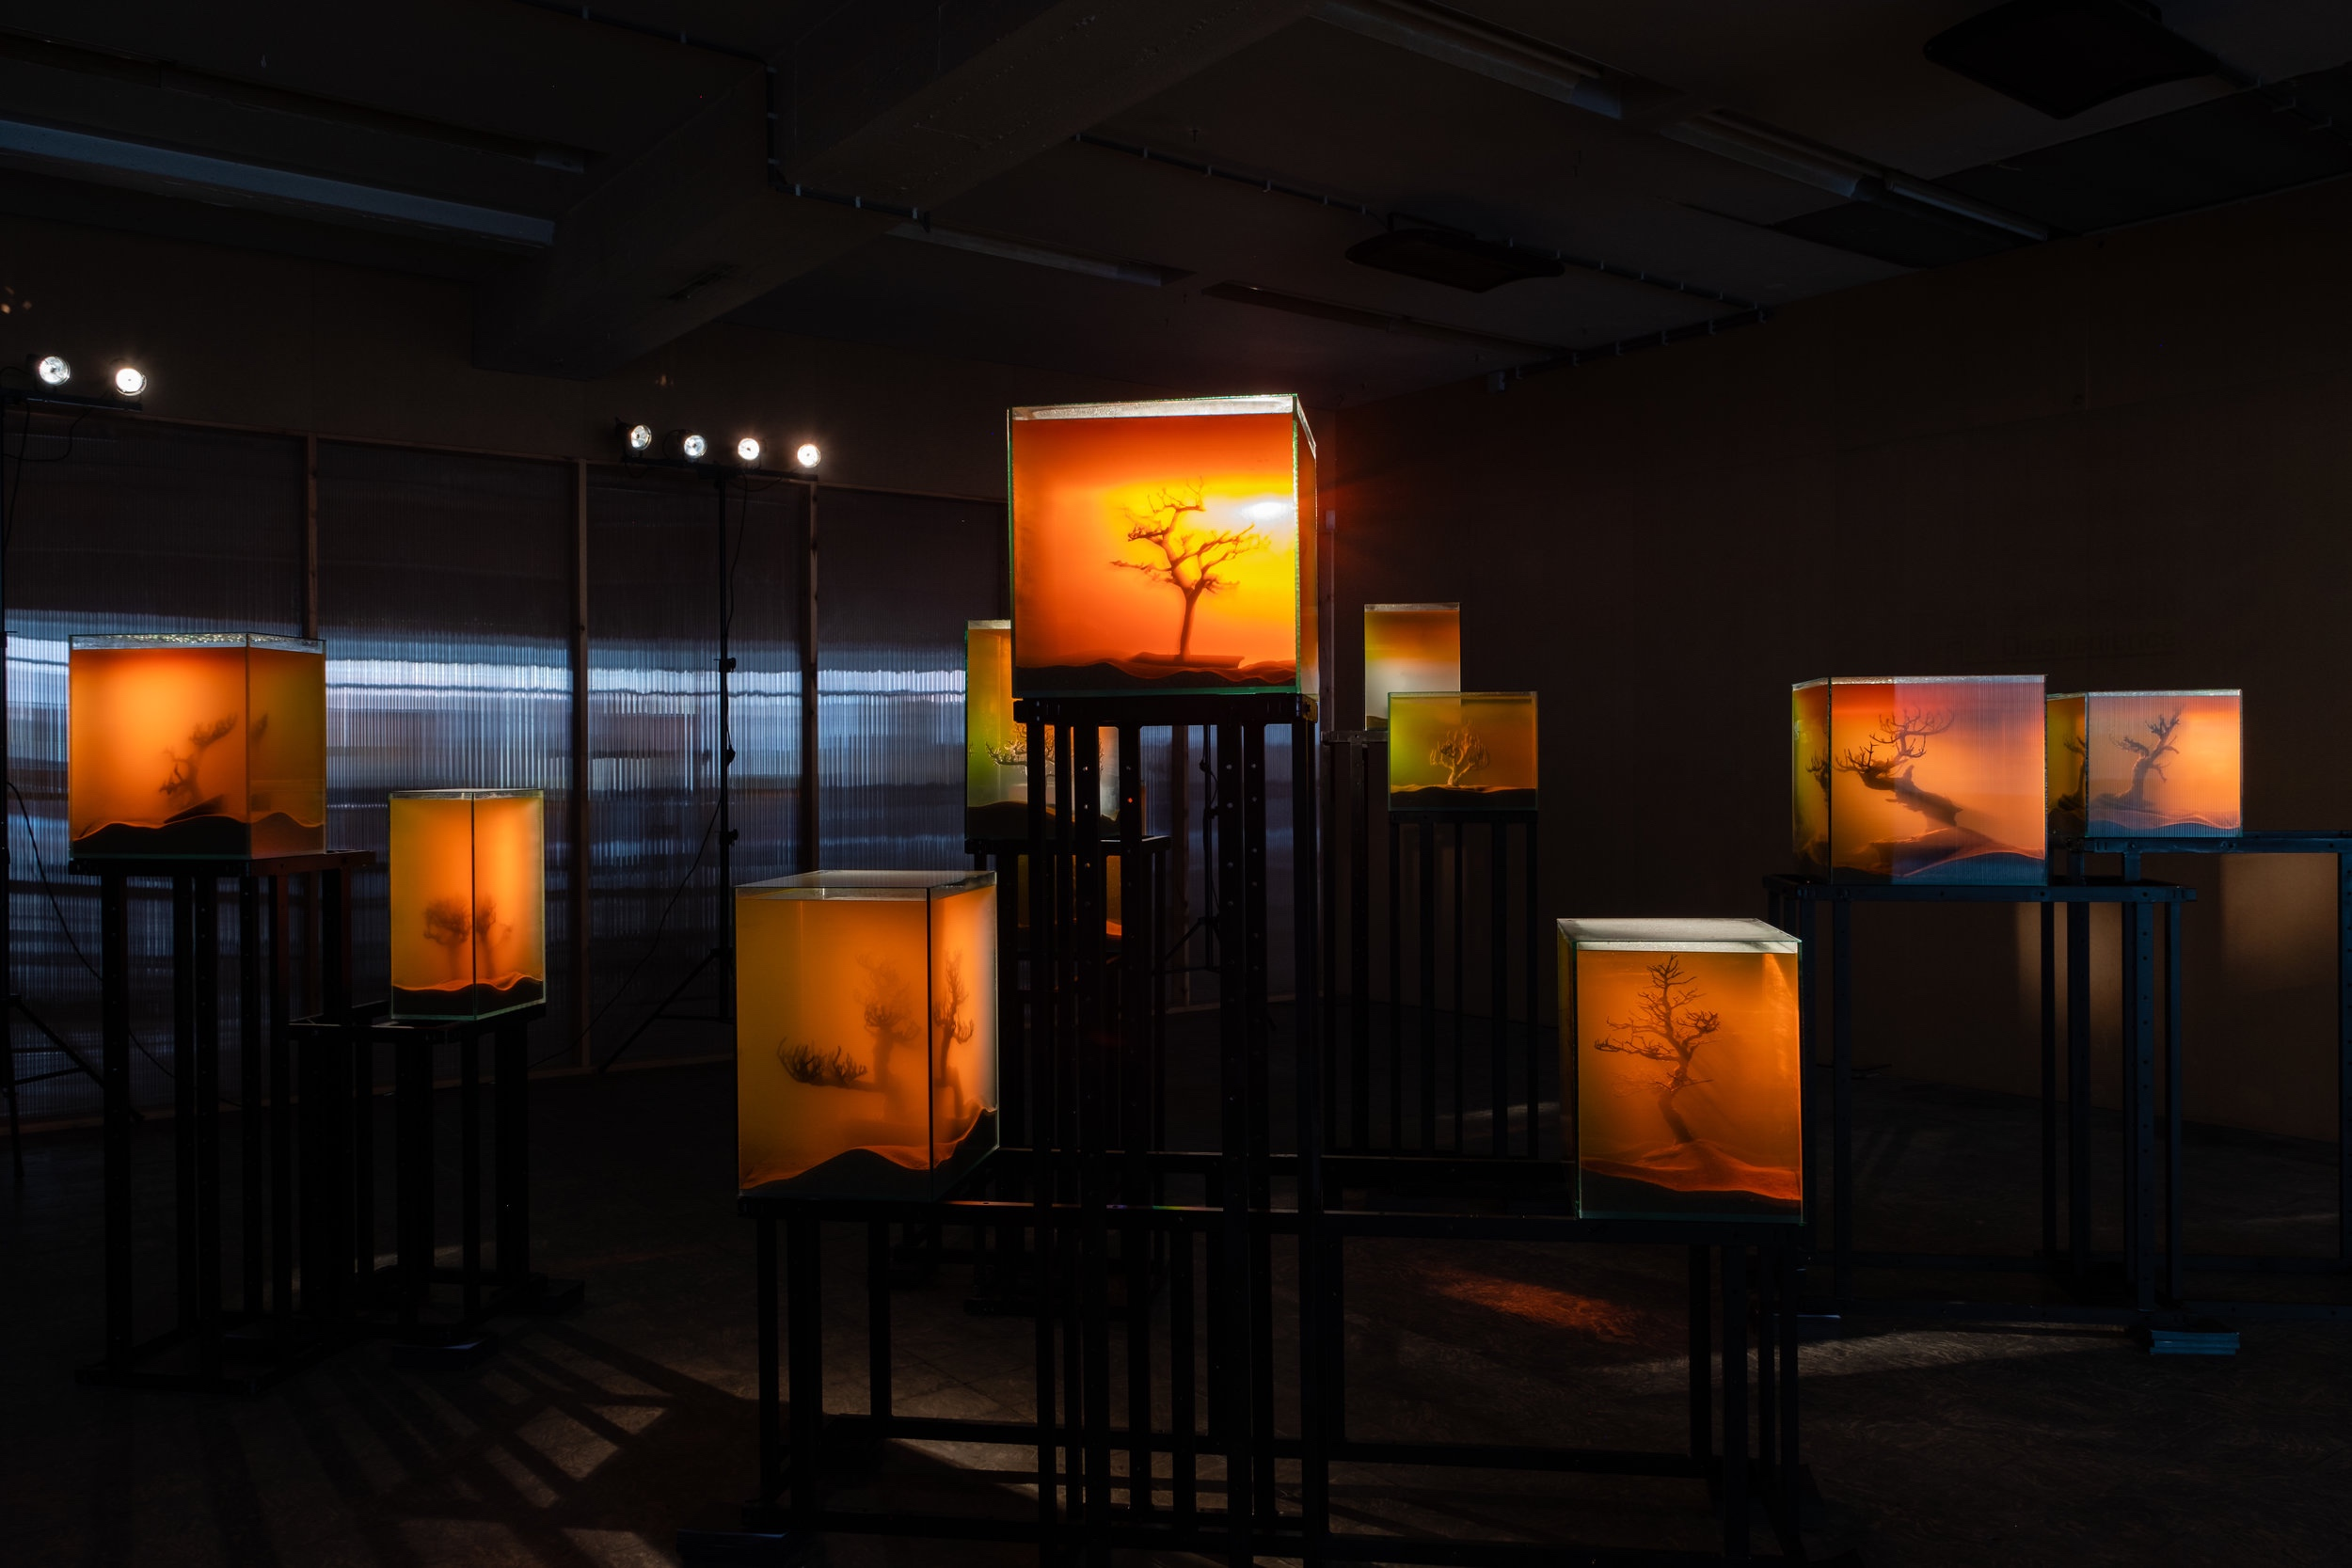 Various Artists, 'toxiThropea.sunset' (2019), in 'Deadly Affairs' (23.03-30.06.2019), Kunsthal Extra City, Antwerp, photo by Tomas Uyttendaele_11.jpg